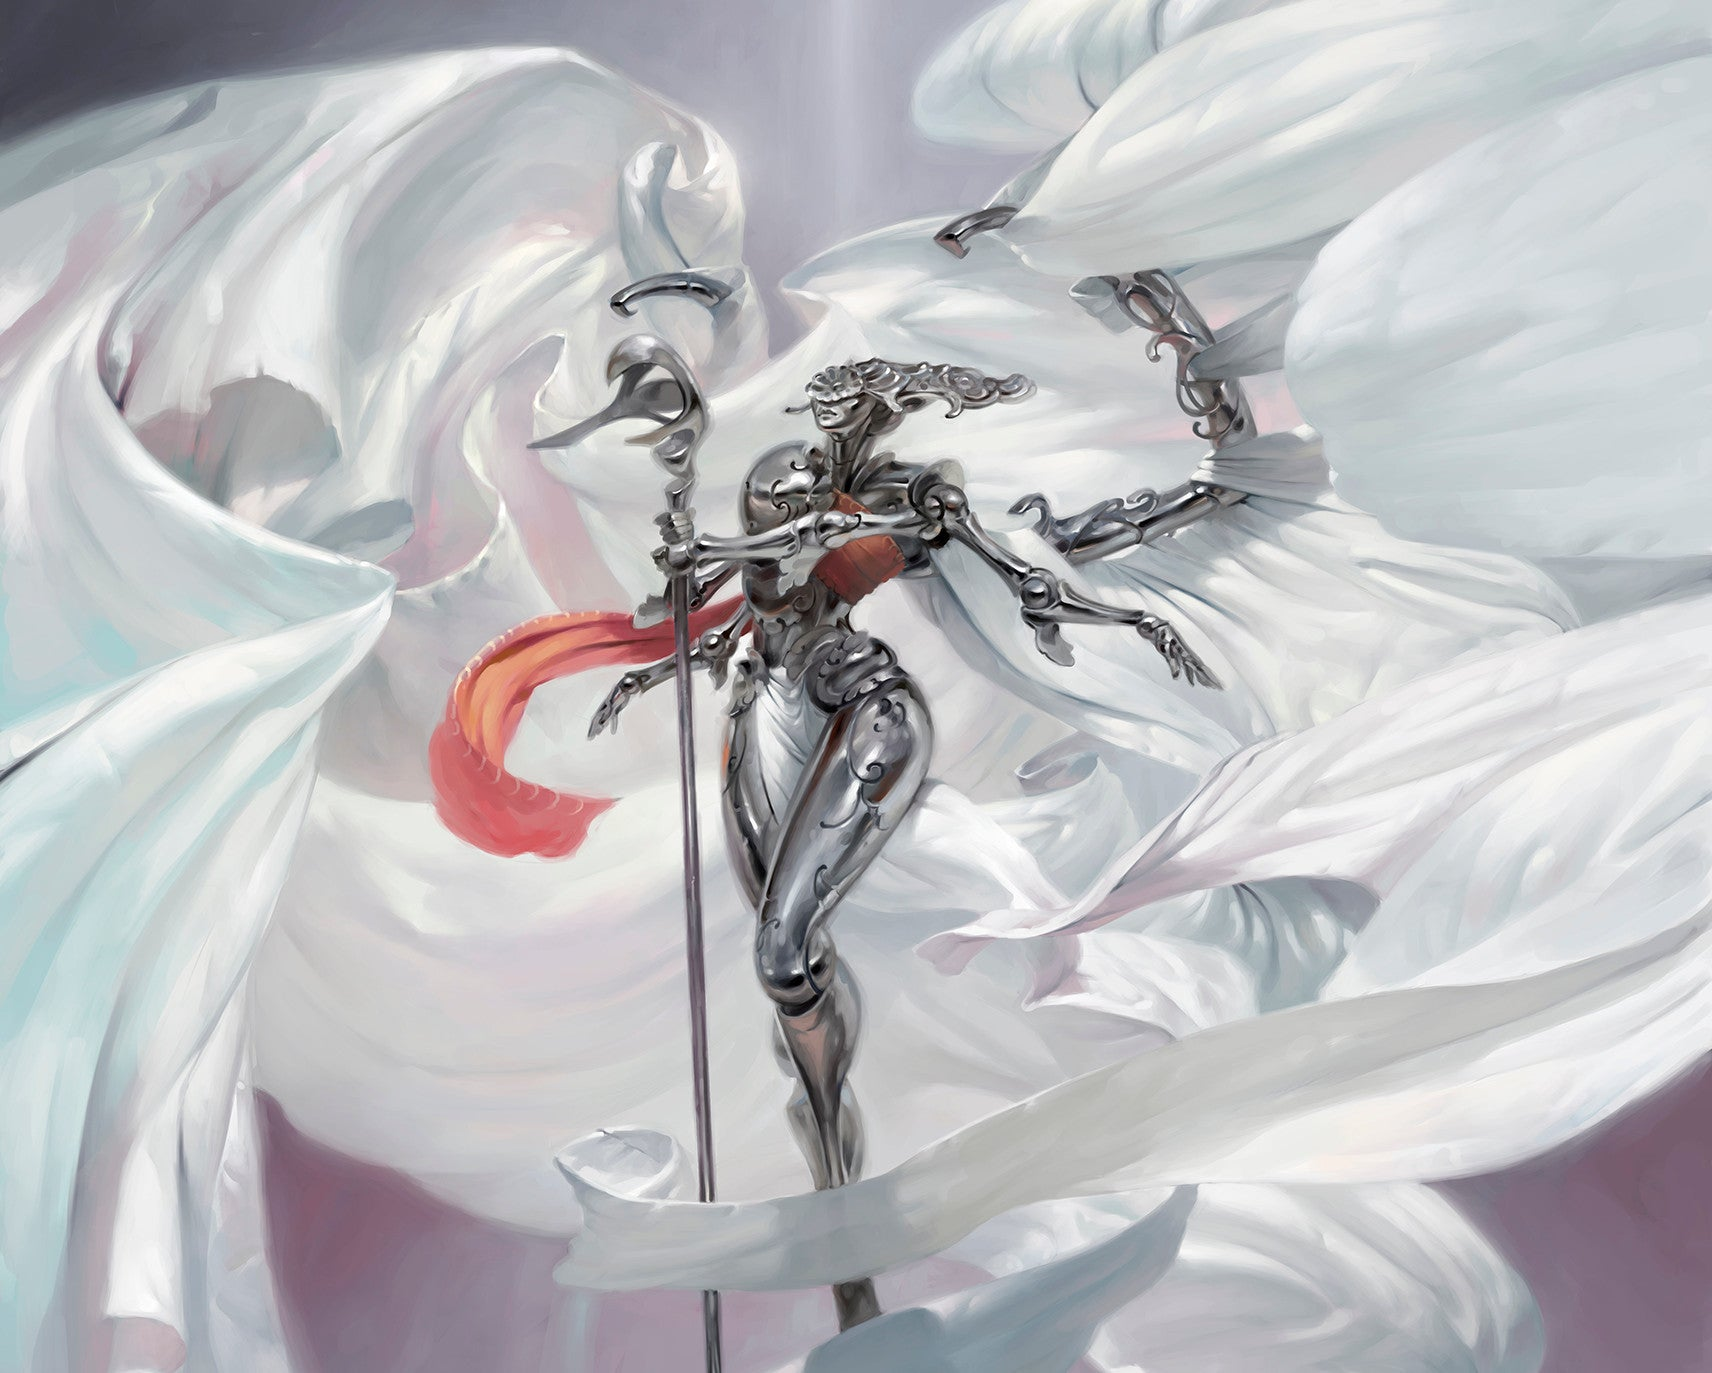 Art in Focus - Platinum Angel Masterpiece by Victor Adame Minguez